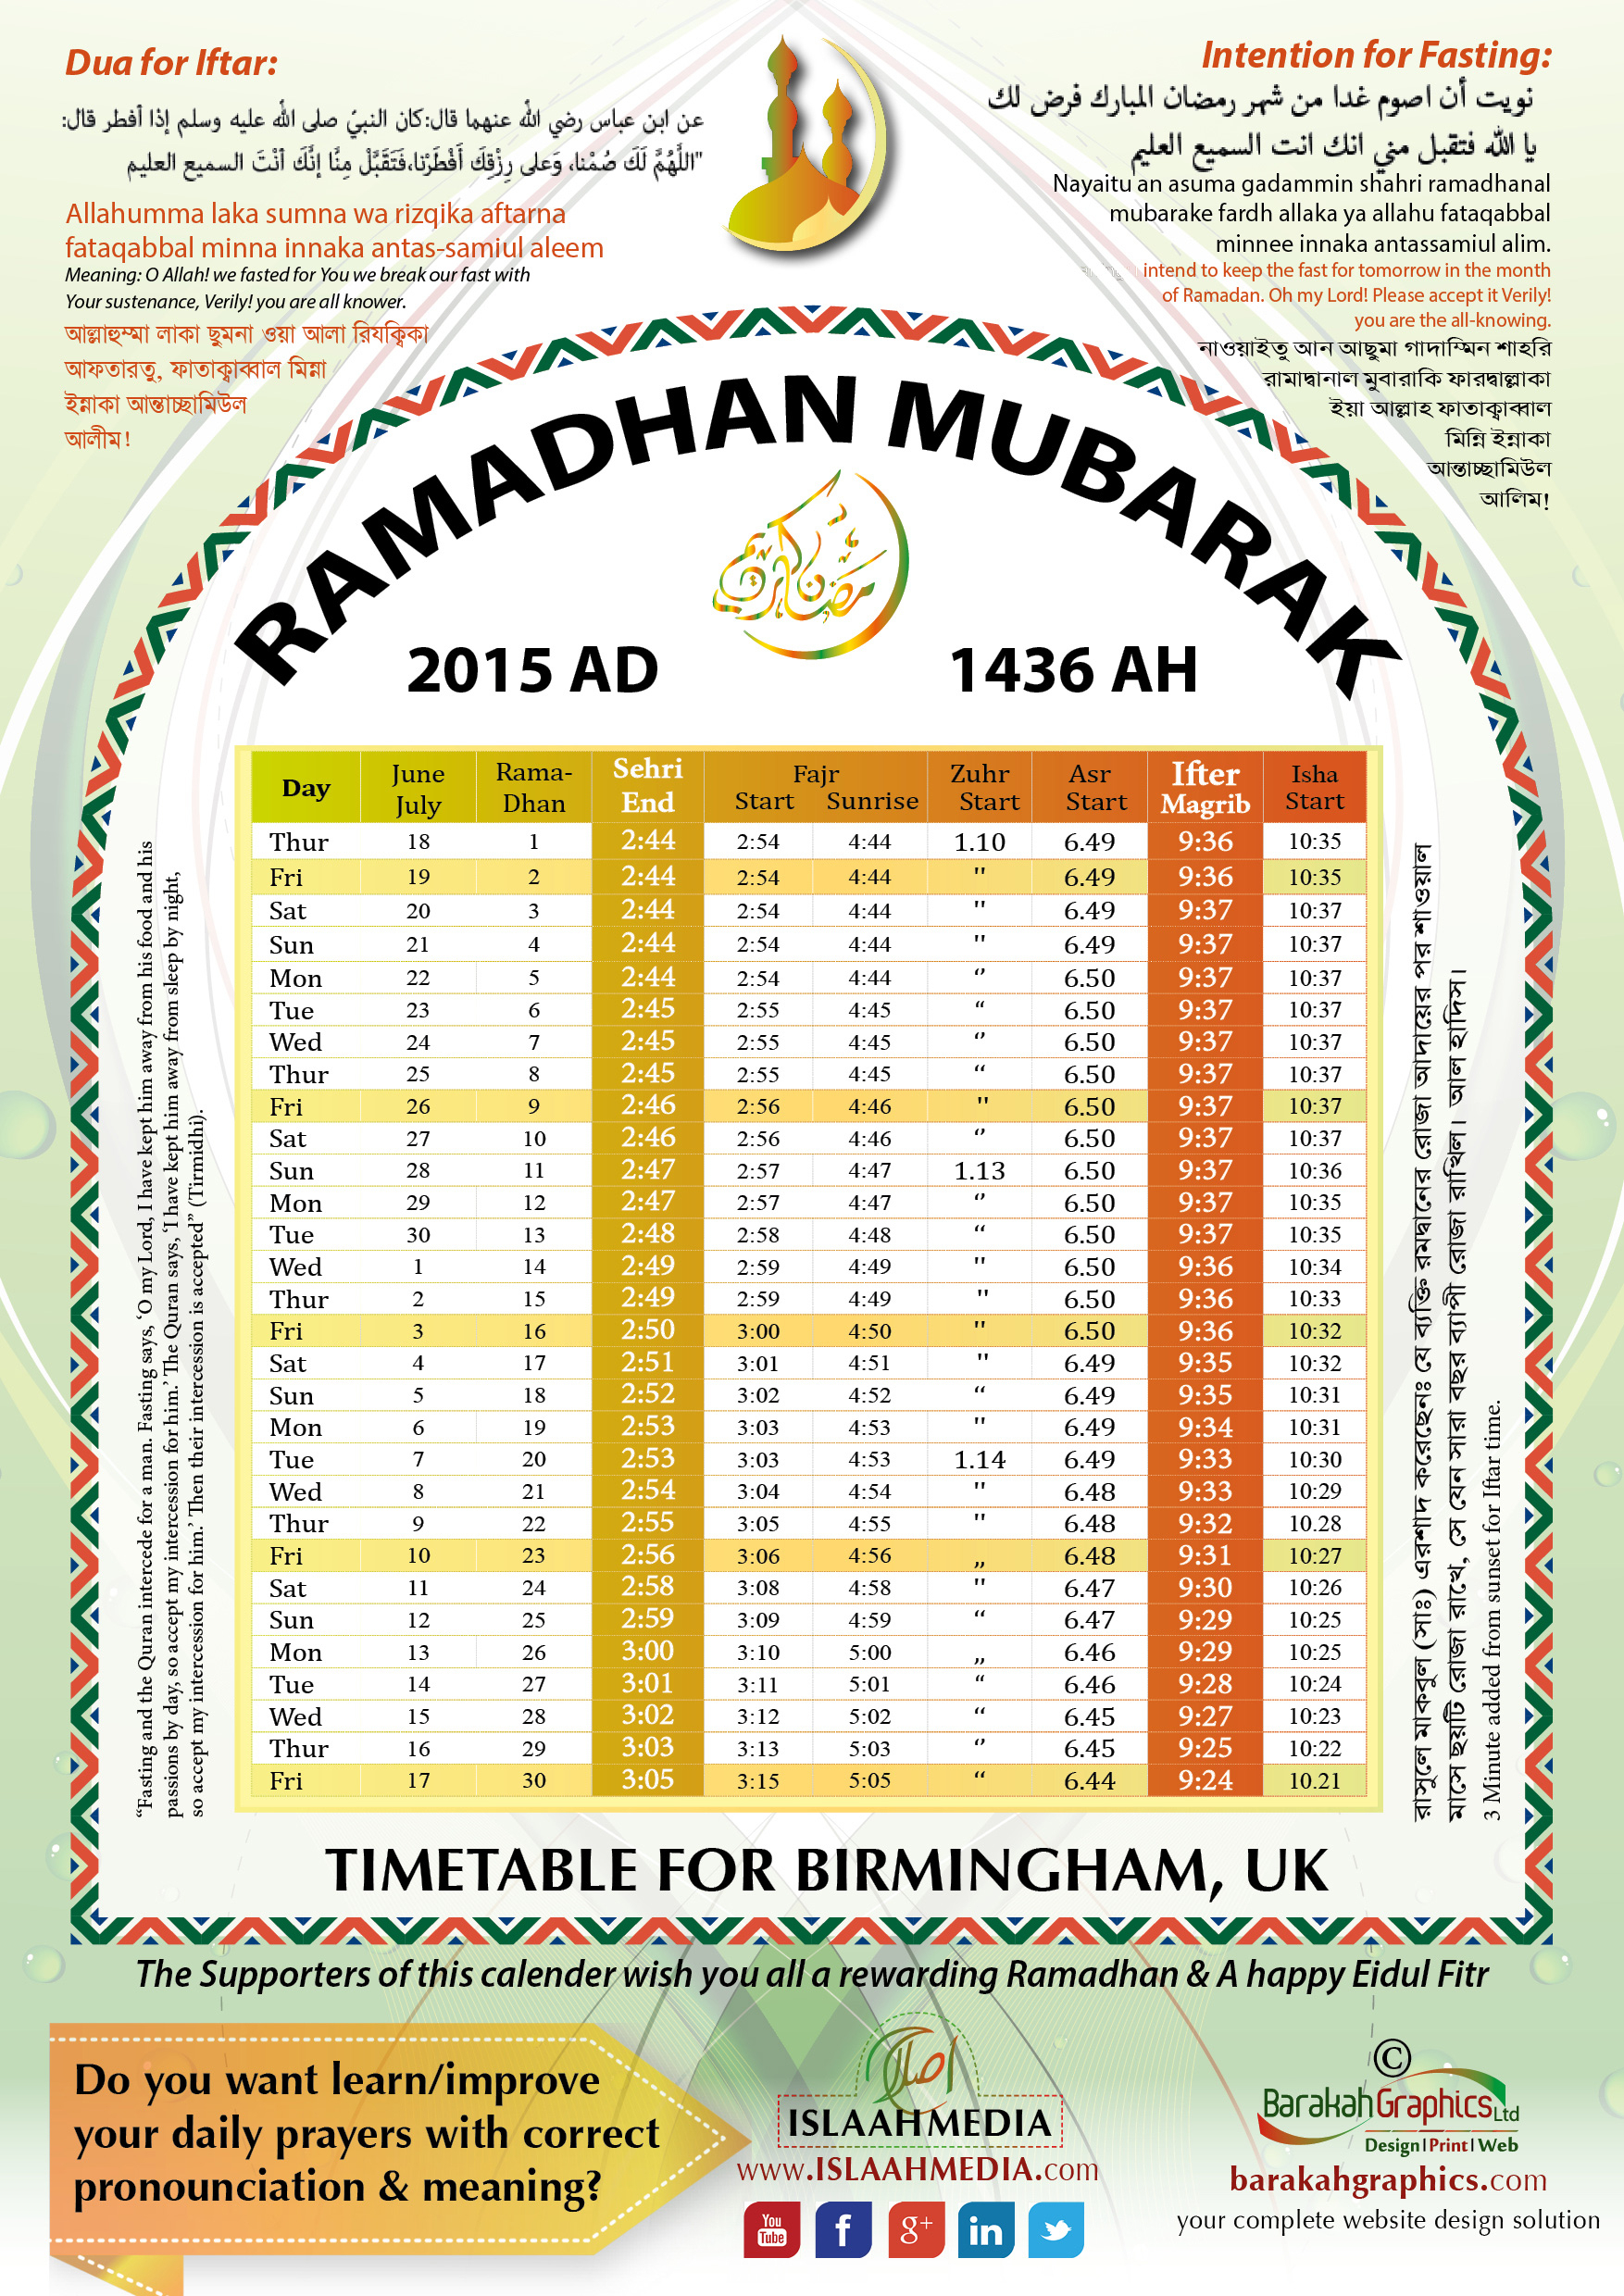 Ramadhan Timetable Birmingham 2015 throughout Ramadan Time Table 2015